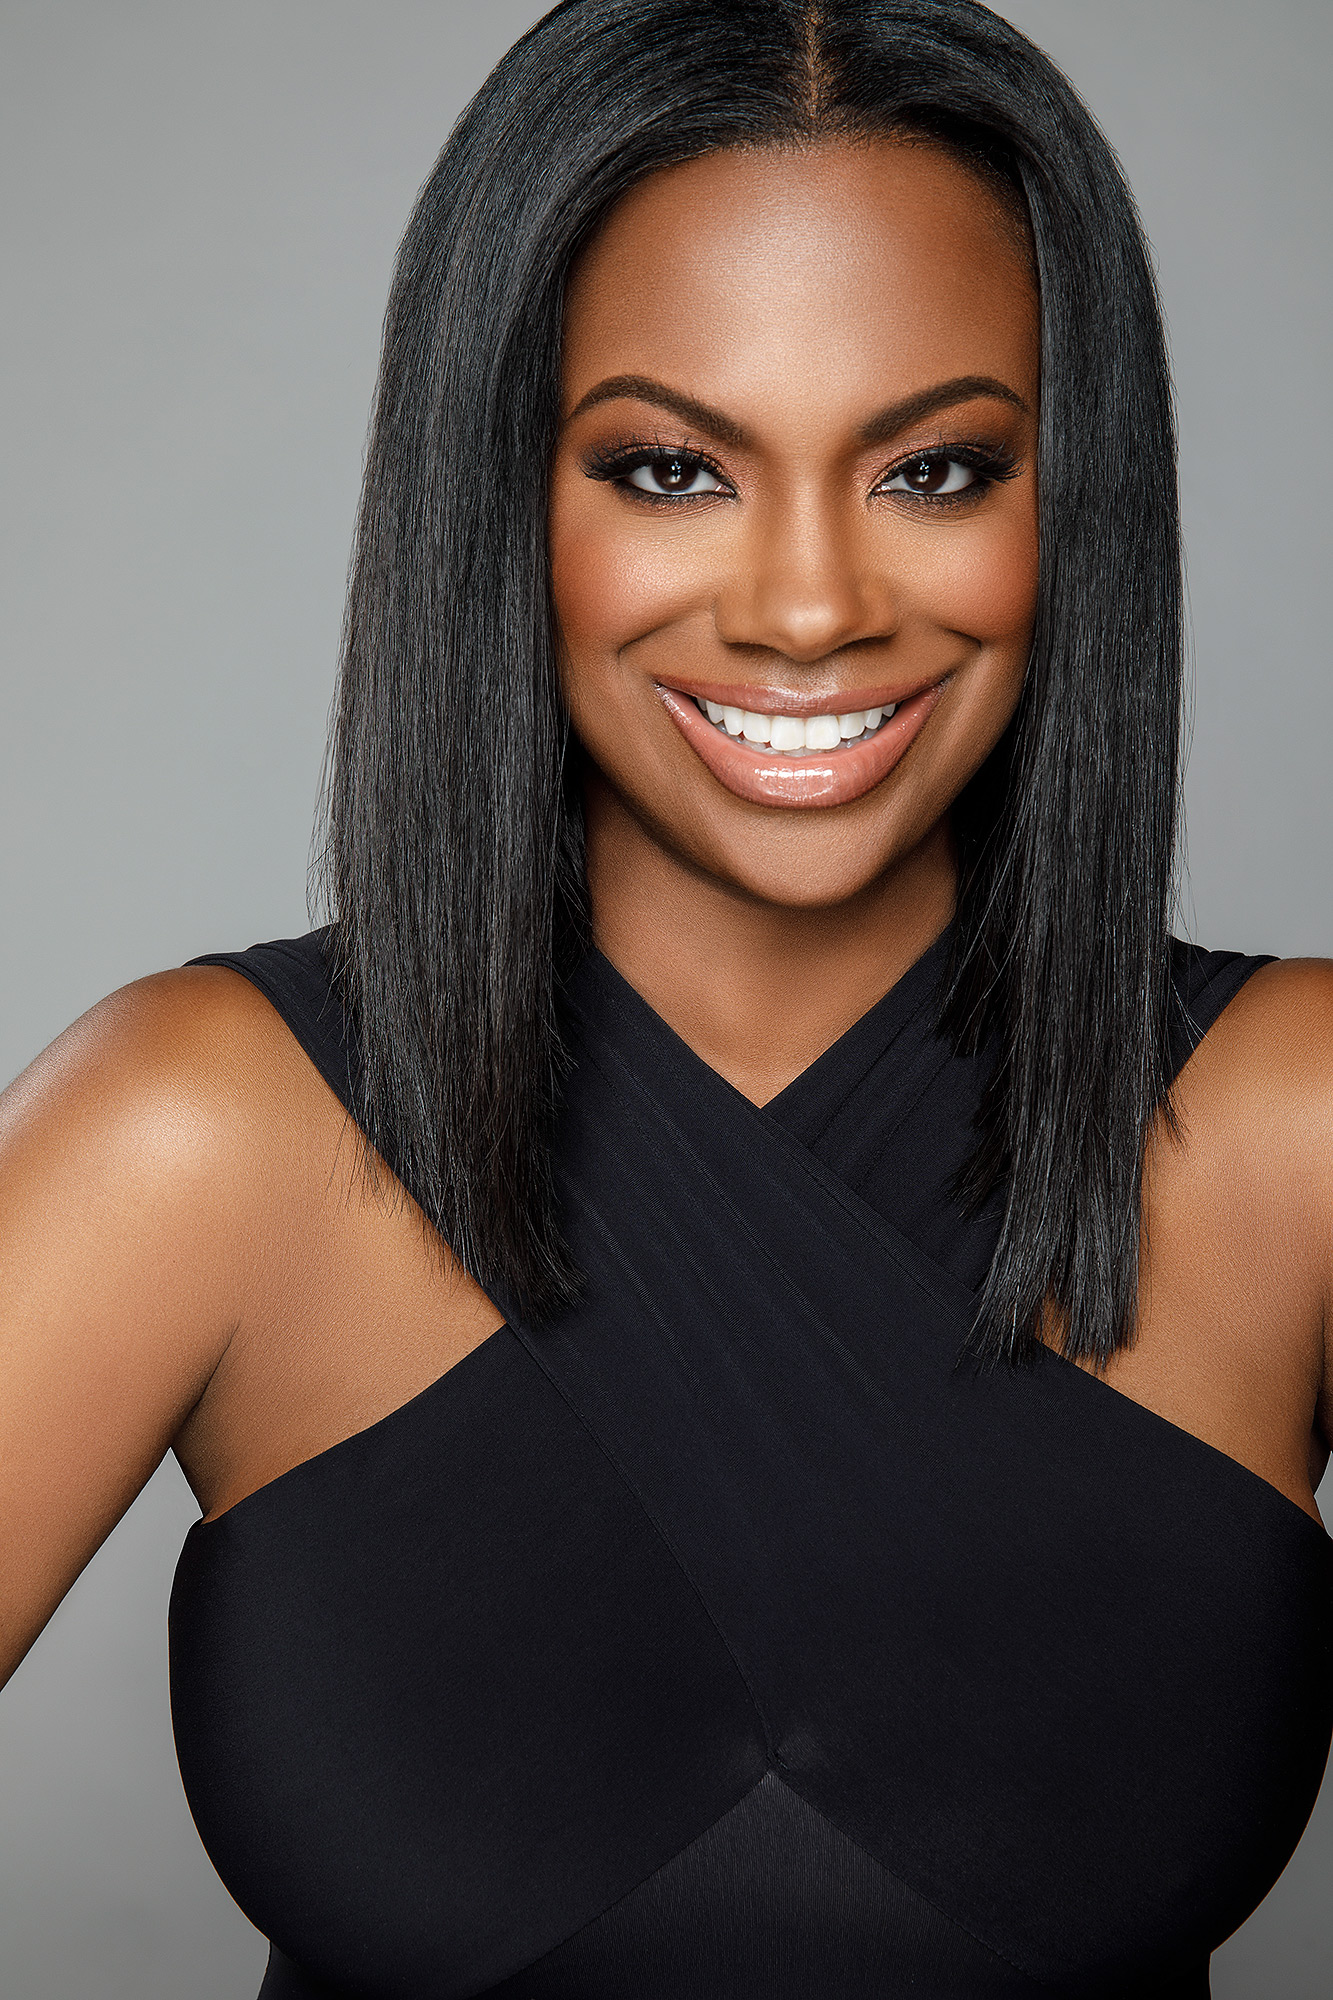 Discussion on this topic: Leslie Marshall (journalist), kandi-burruss/